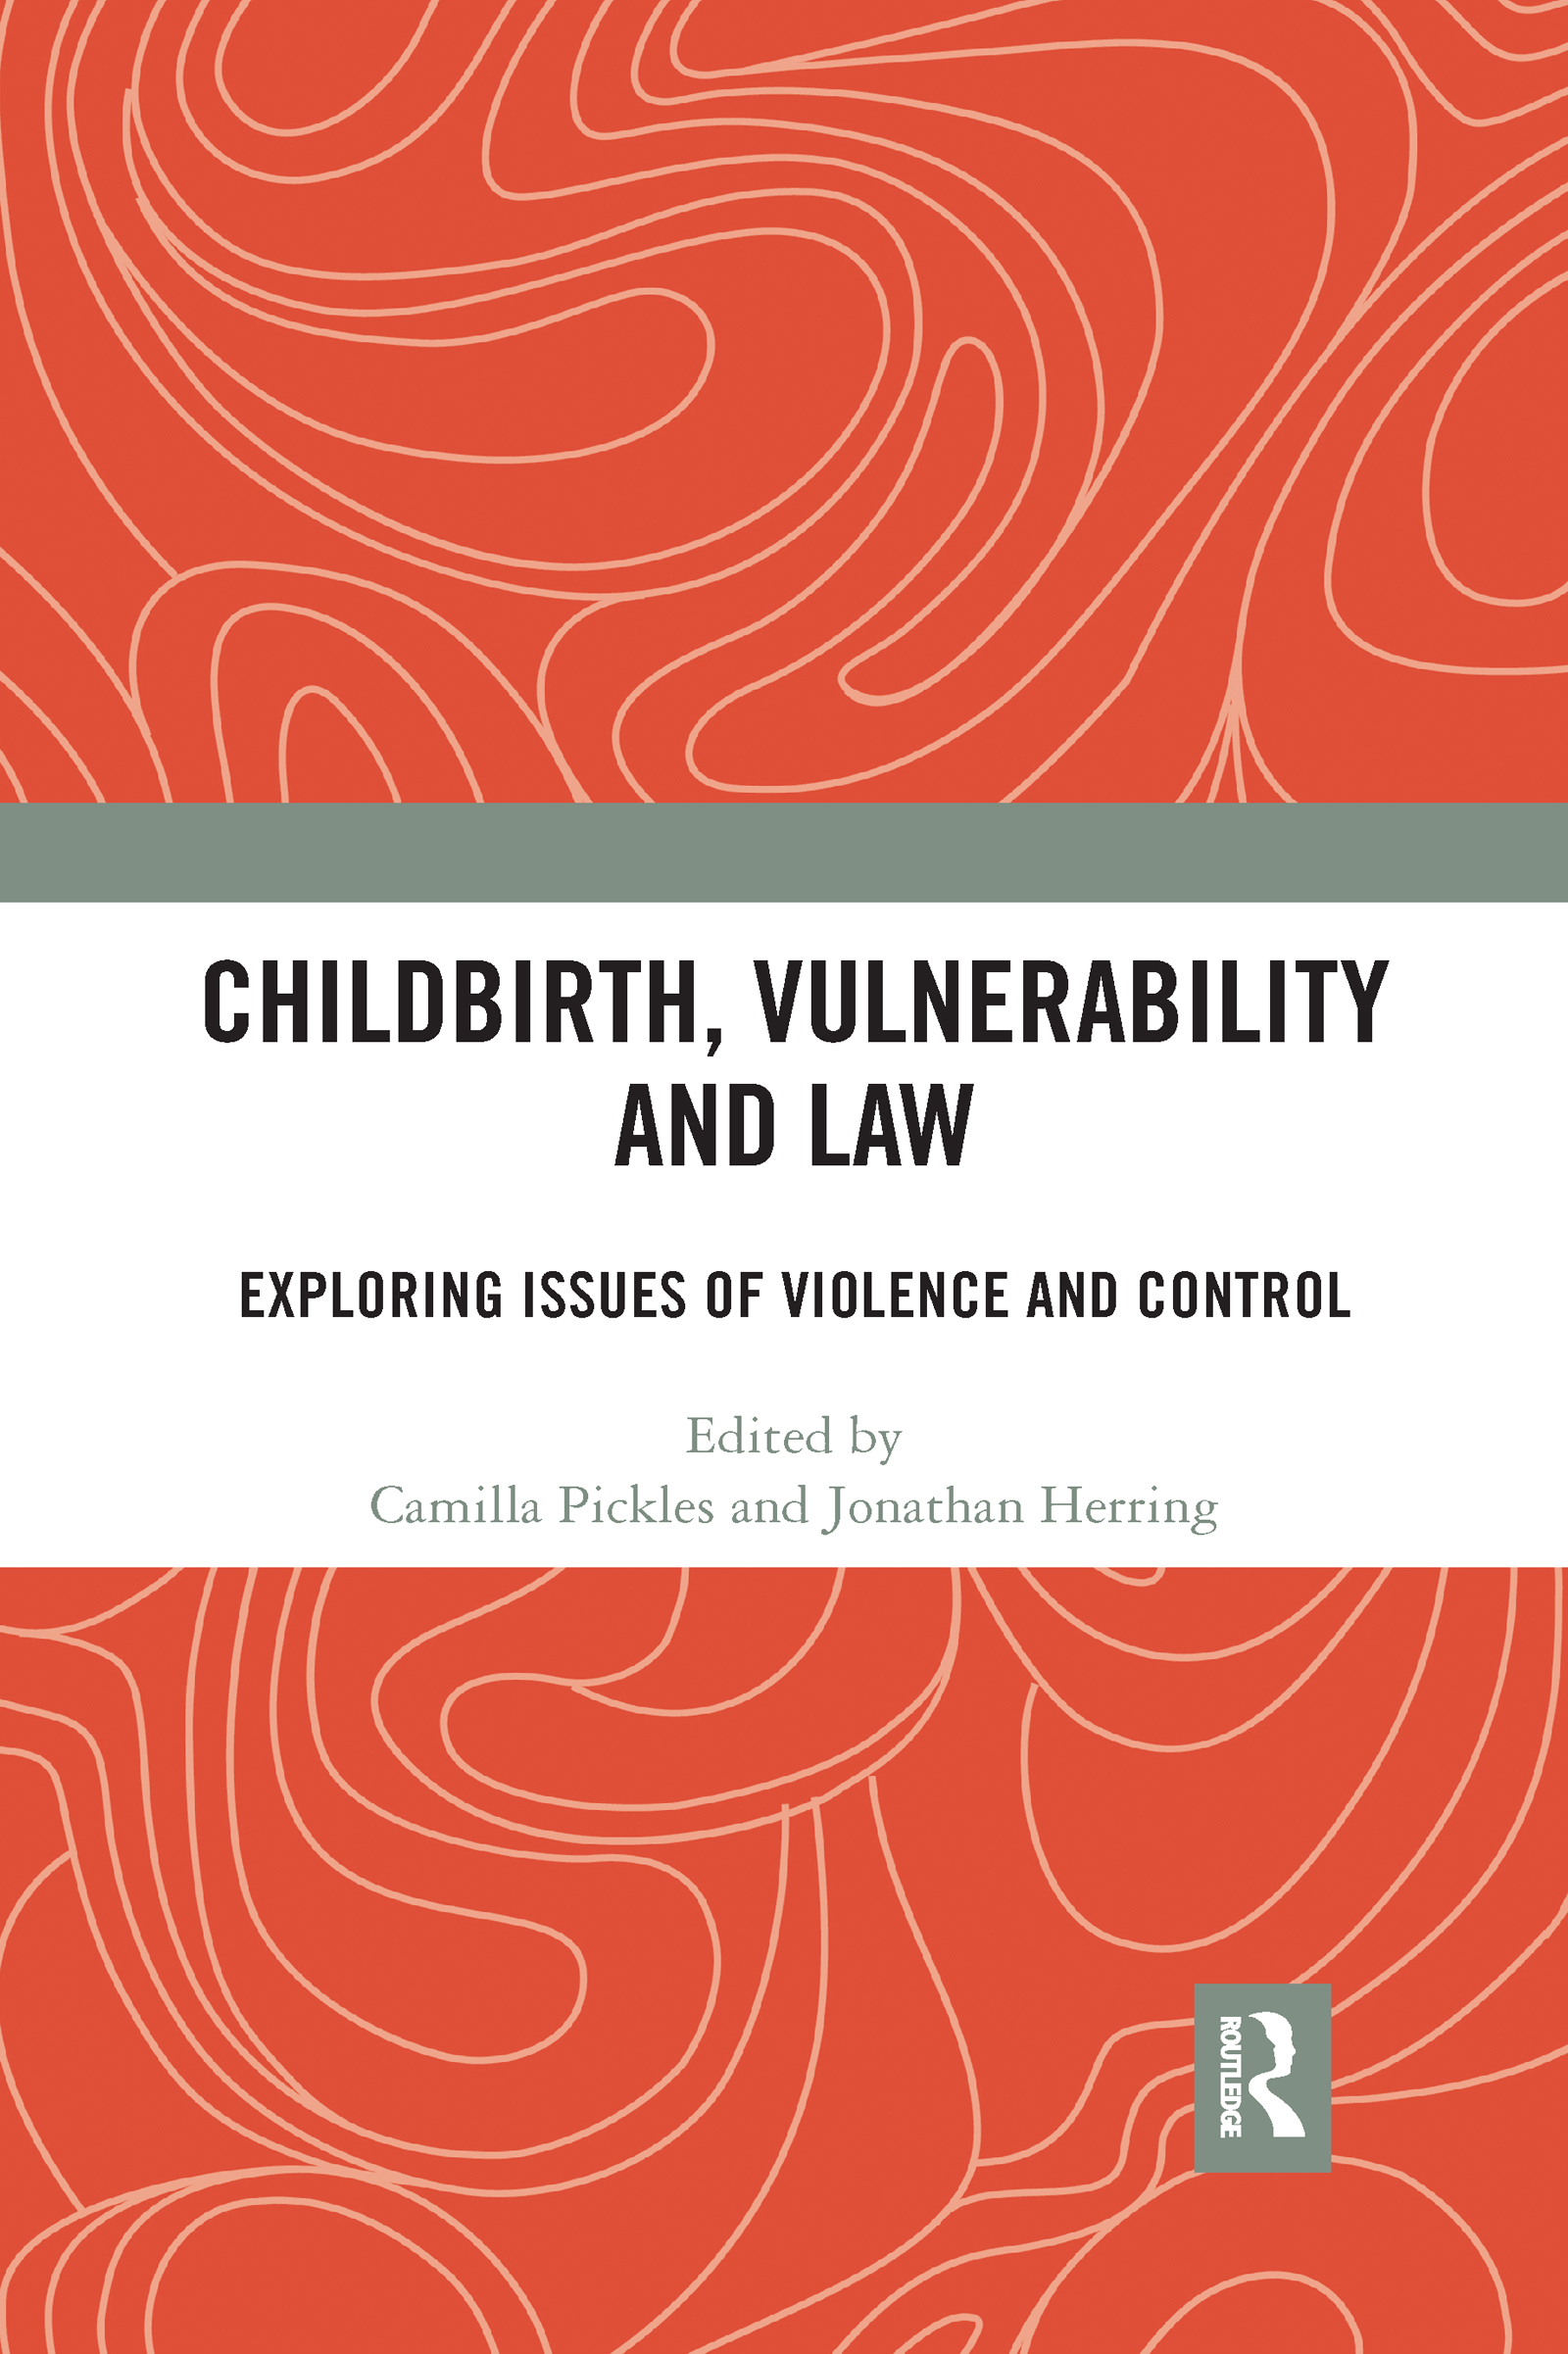 Childbirth, Vulnerability and Law